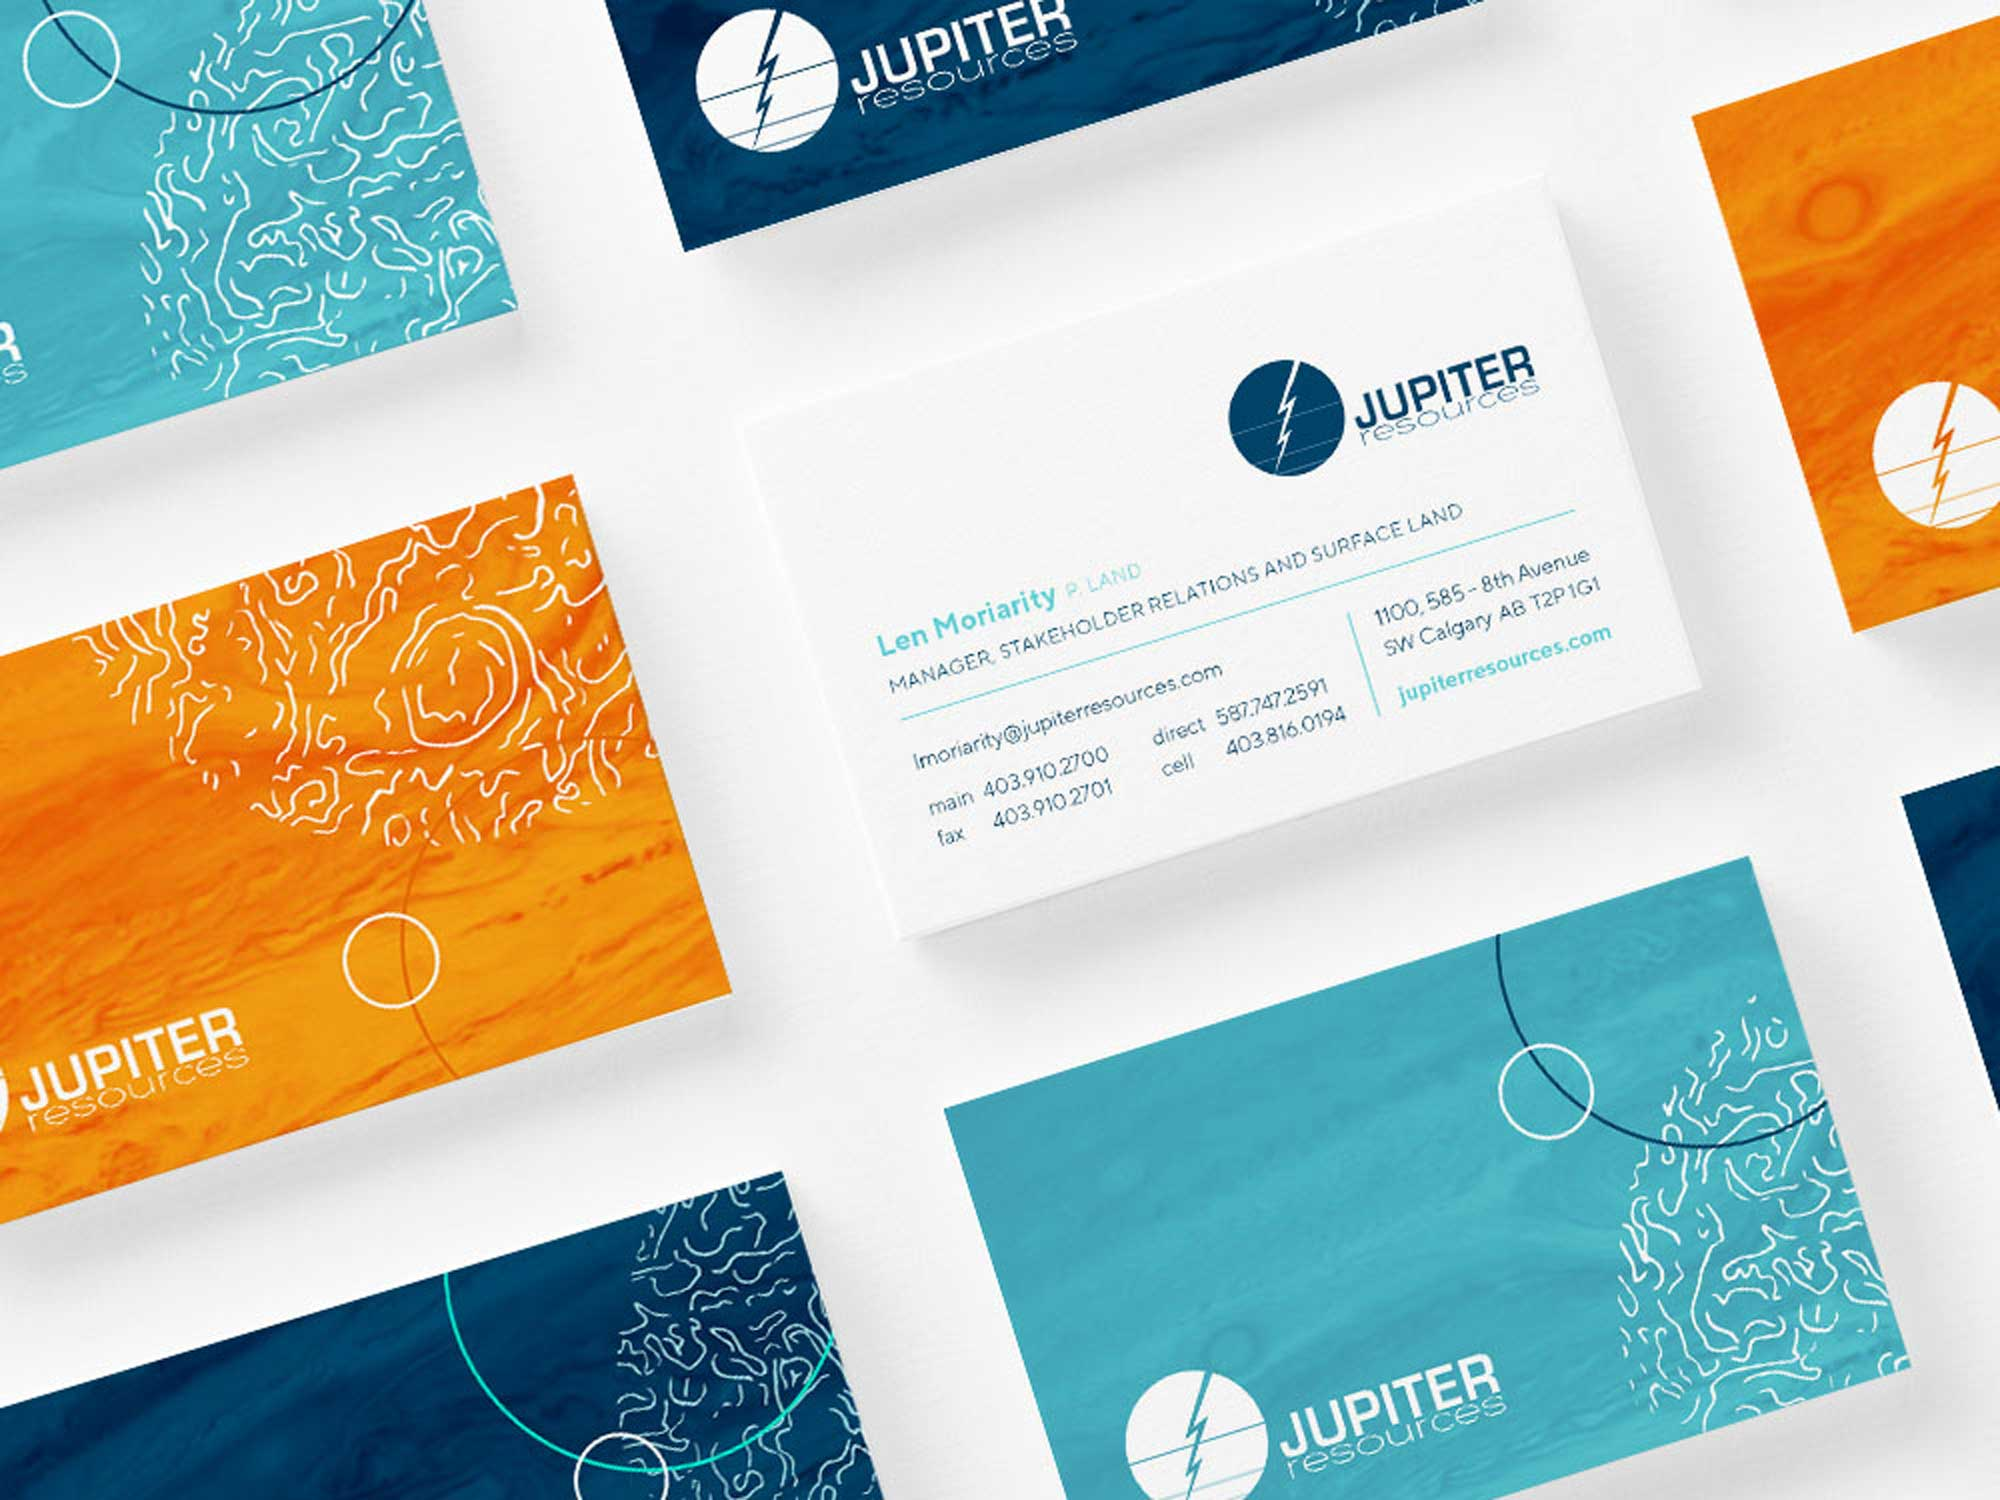 Space technology graphics on business cards for an oil and gas company in Calgary Alberta called Jupiter Resources